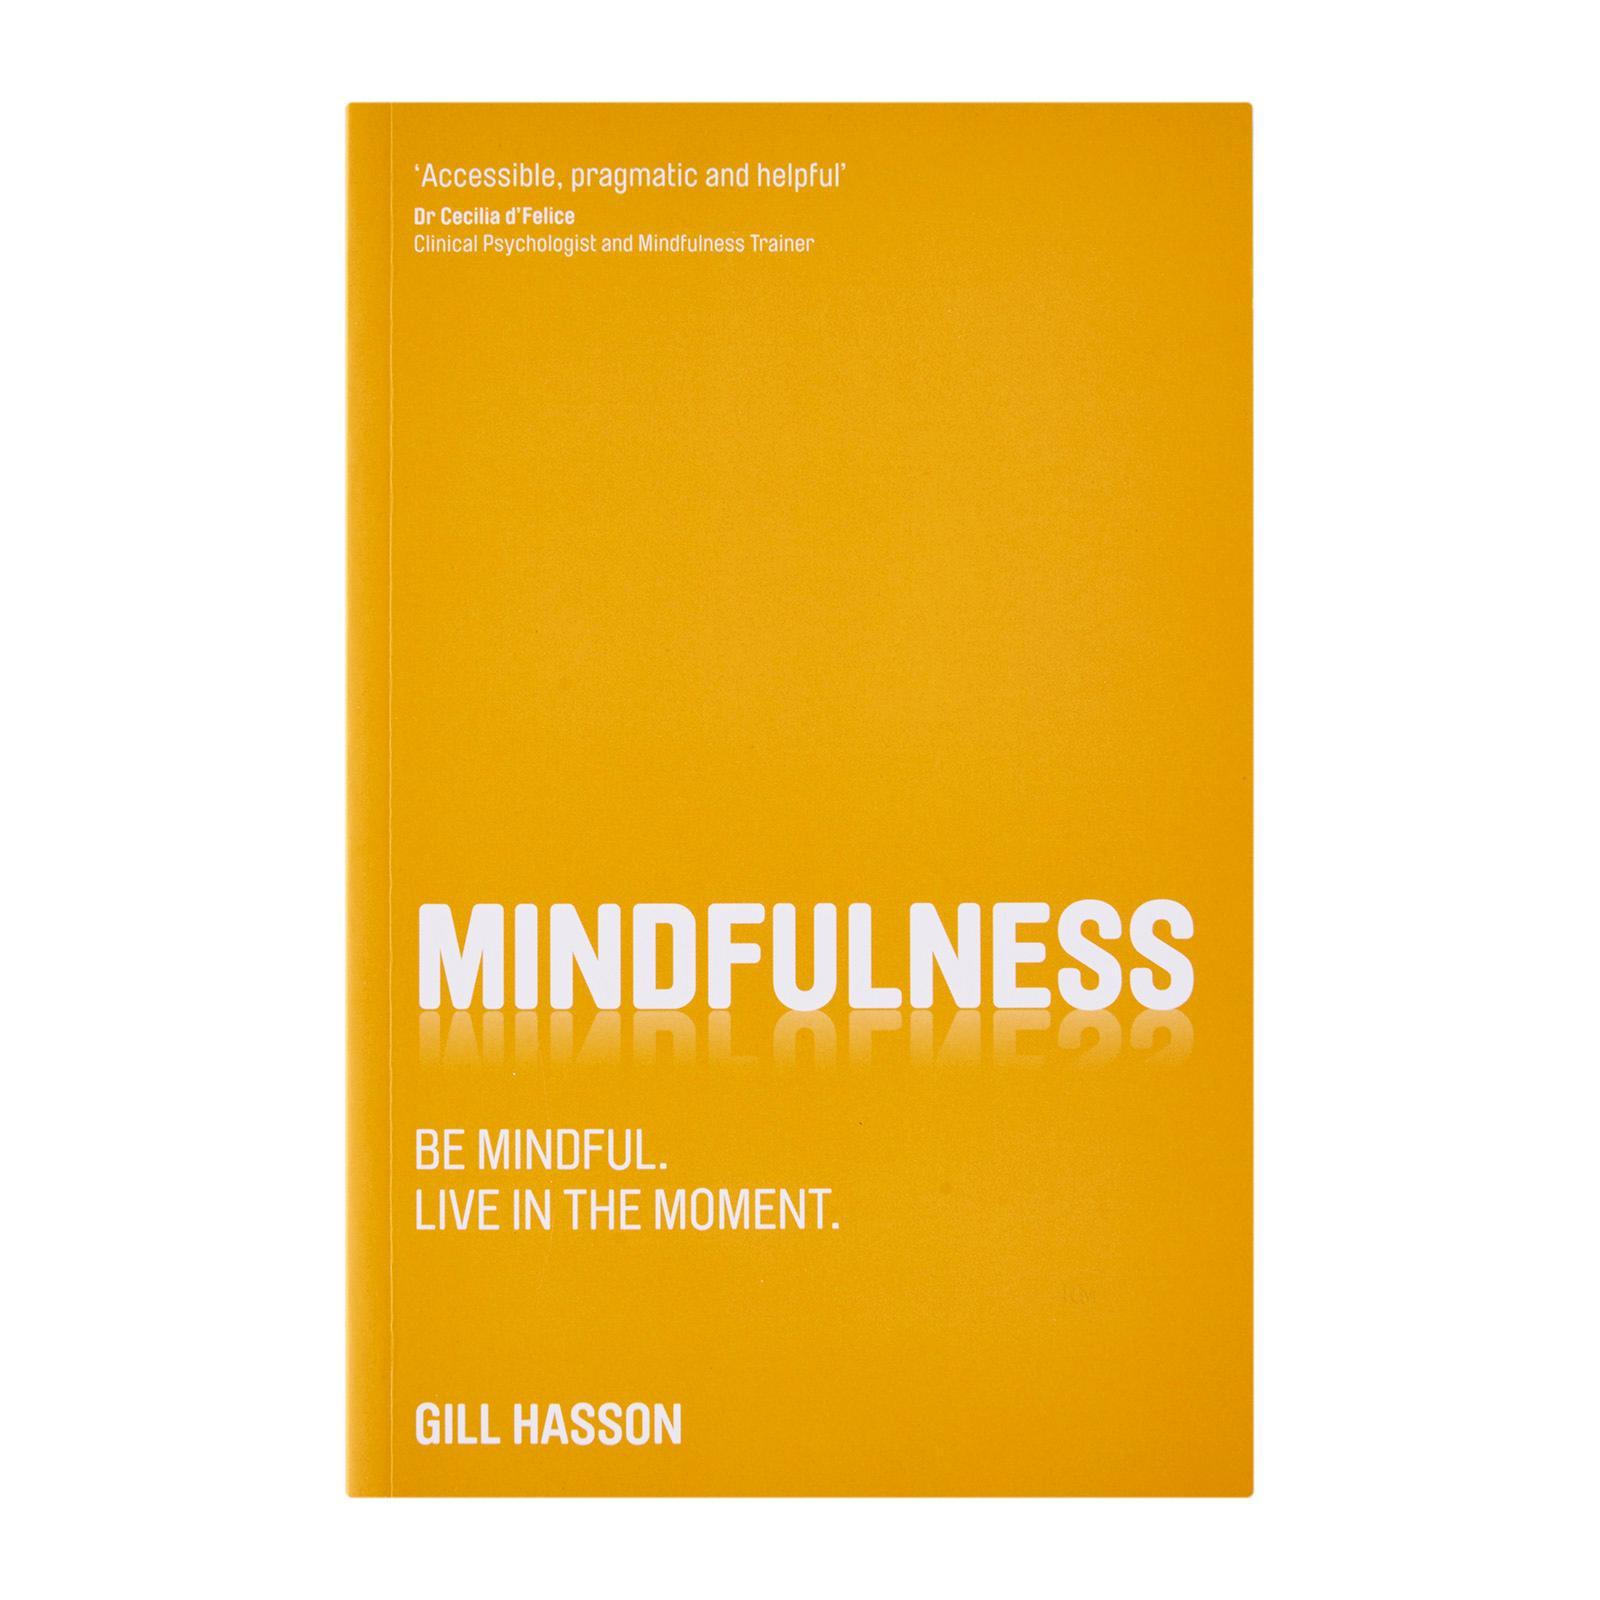 Mindfulness: Be Mindful Live In The Moment